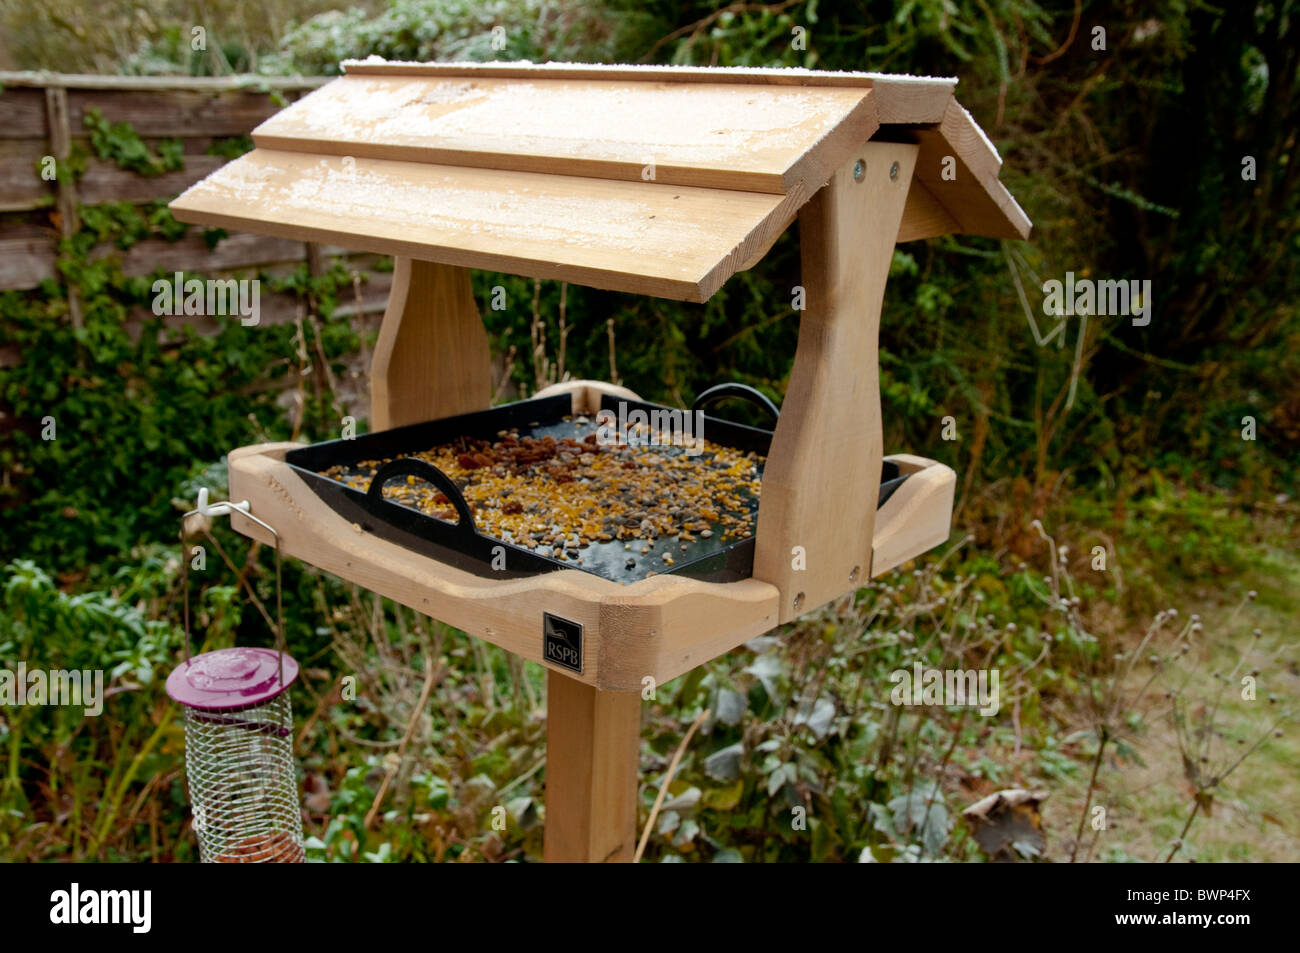 RSPB Bird Table (new) with removable plastic tray for cleanliness and hygiene purposes. Frosty winter day in a UK - Stock Image